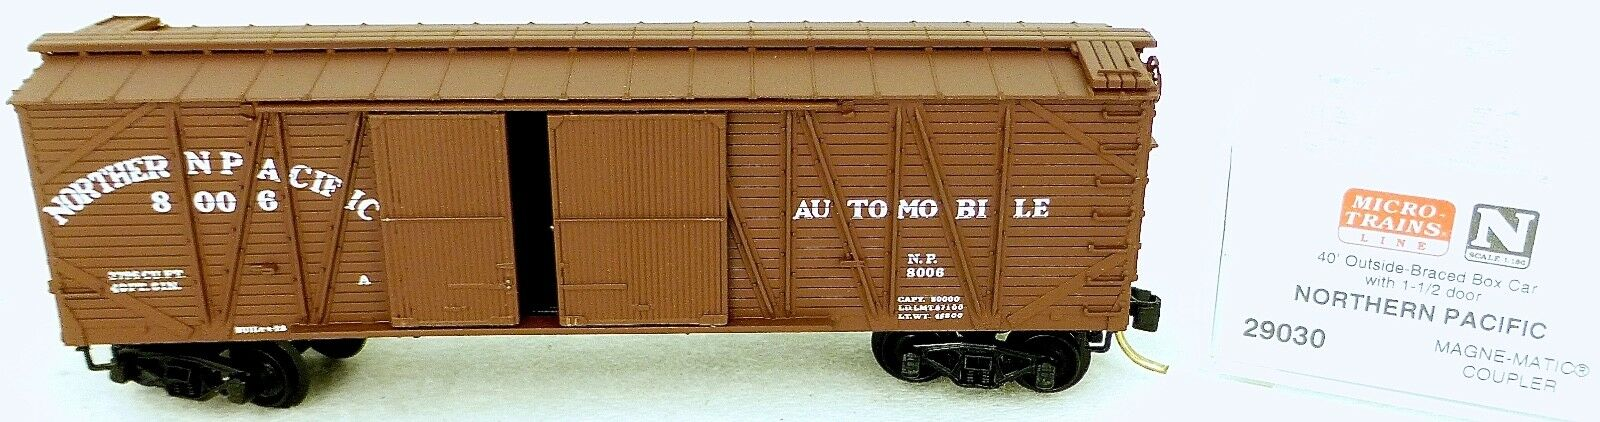 40´ outside Br Boxcar Northern Pacific 8006 Micro Trains Line 29030 N 1 160 C Å